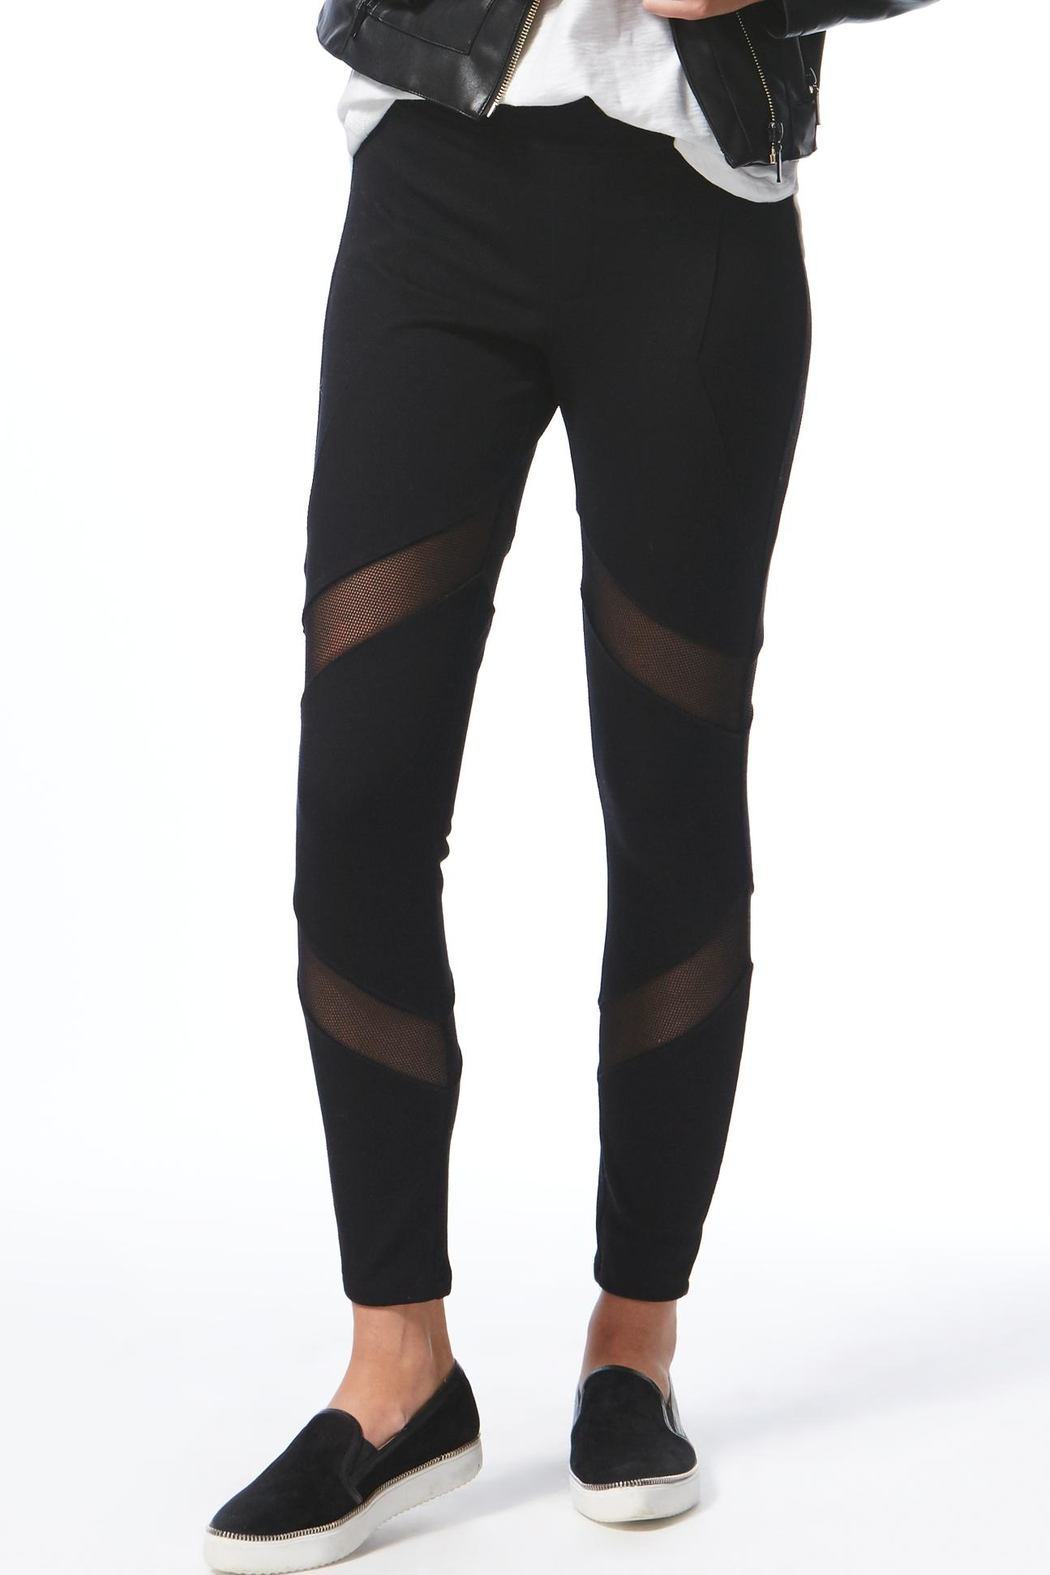 Tart Collections Nash Pant Leggings - Front Cropped Image